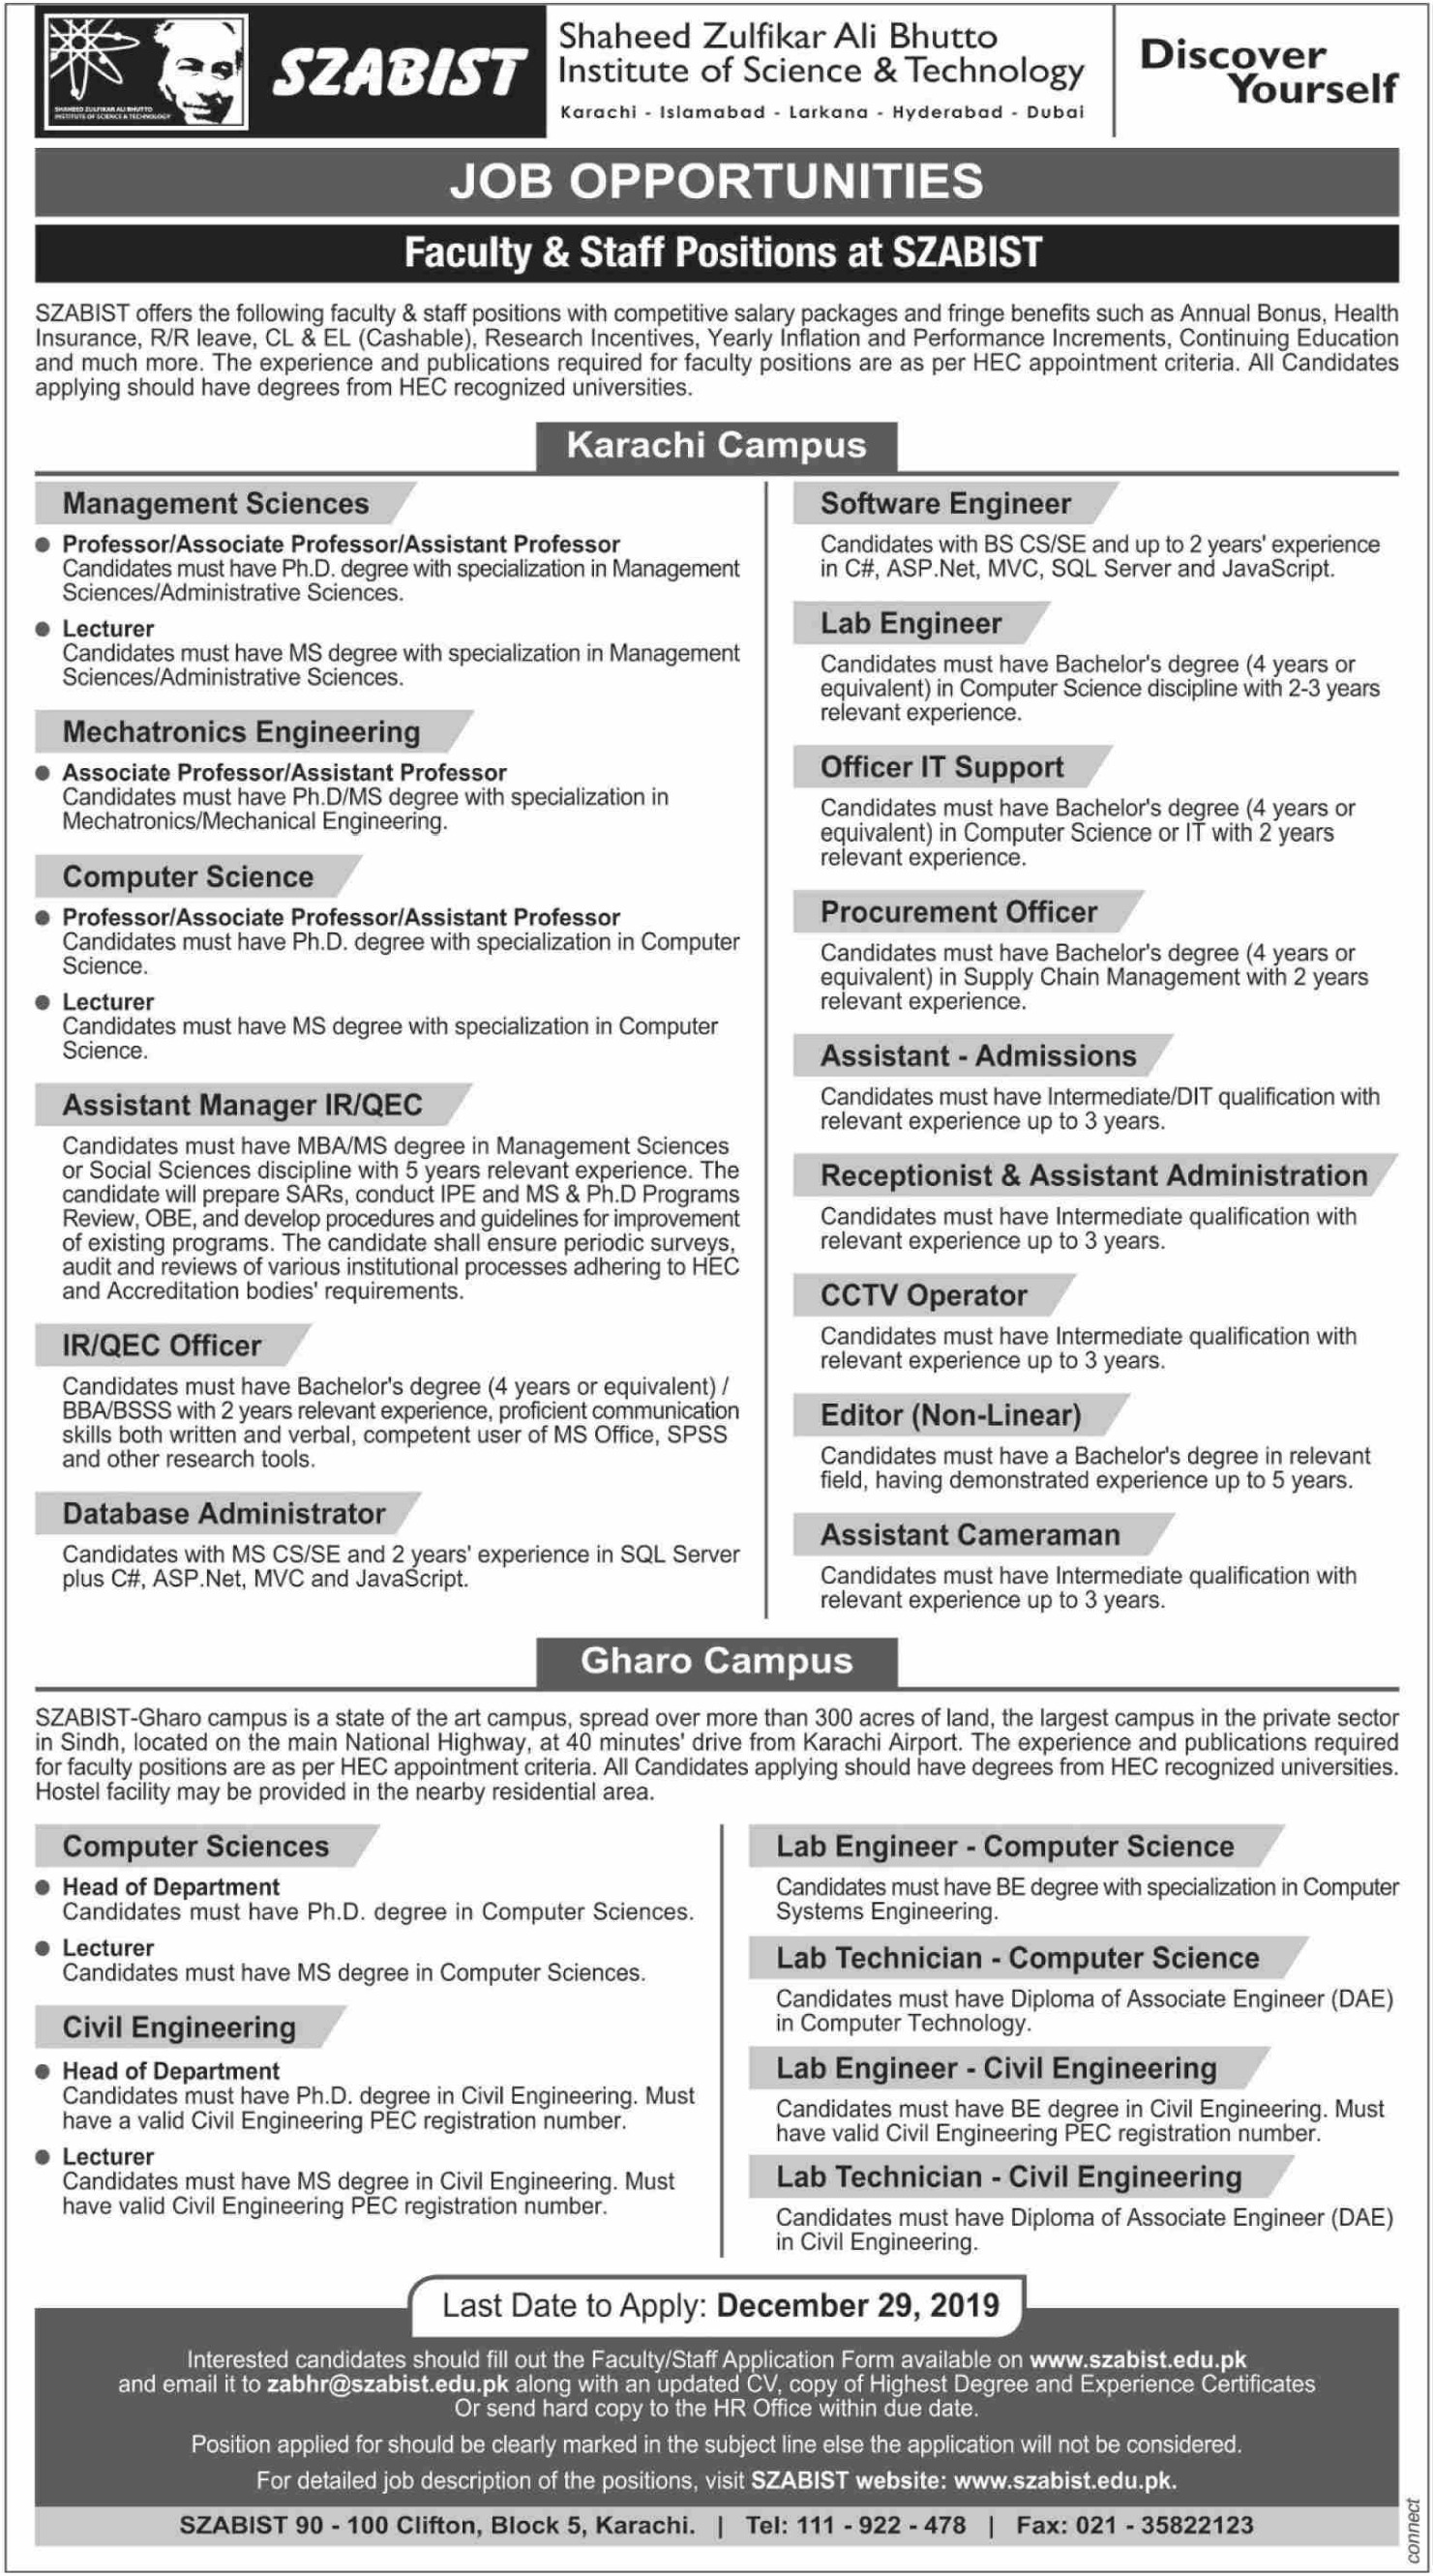 SZABIST Jobs 2019 Shaheed Zulfikar Ali Bhutto Institute of Science & Technology